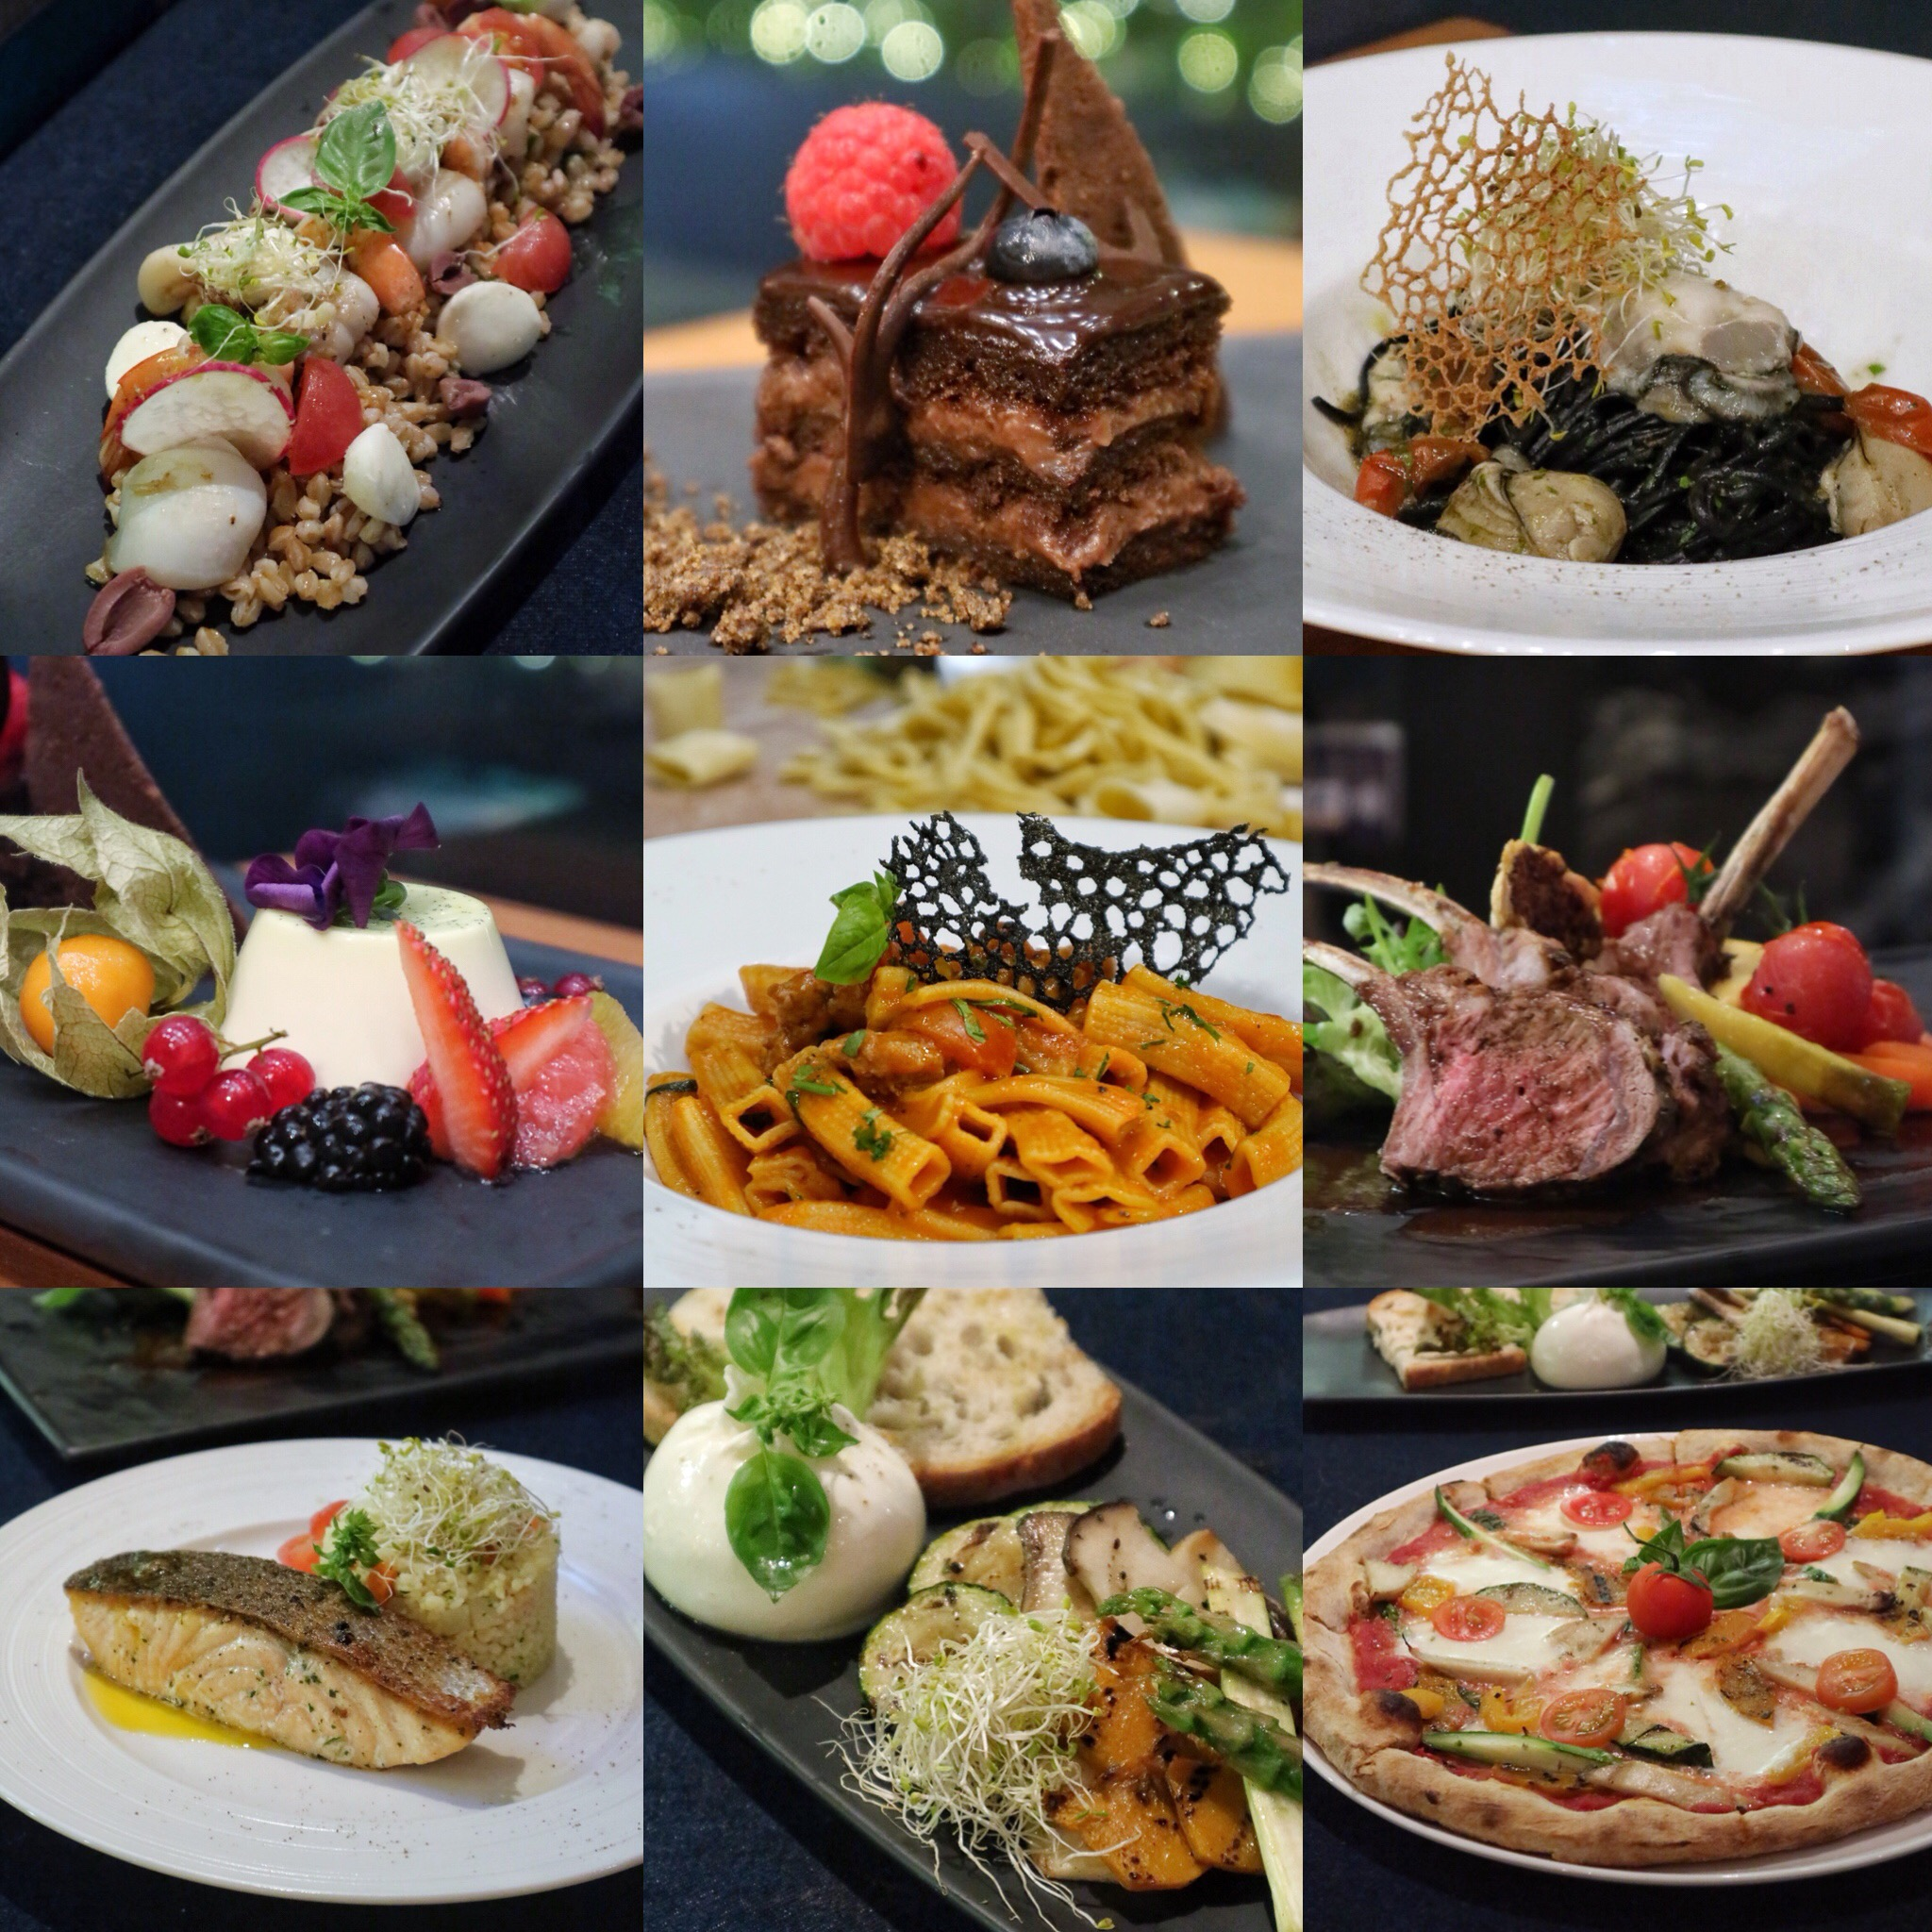 Atmastel: Welcomes Brand New Menu – Perfect for a Romantic Date